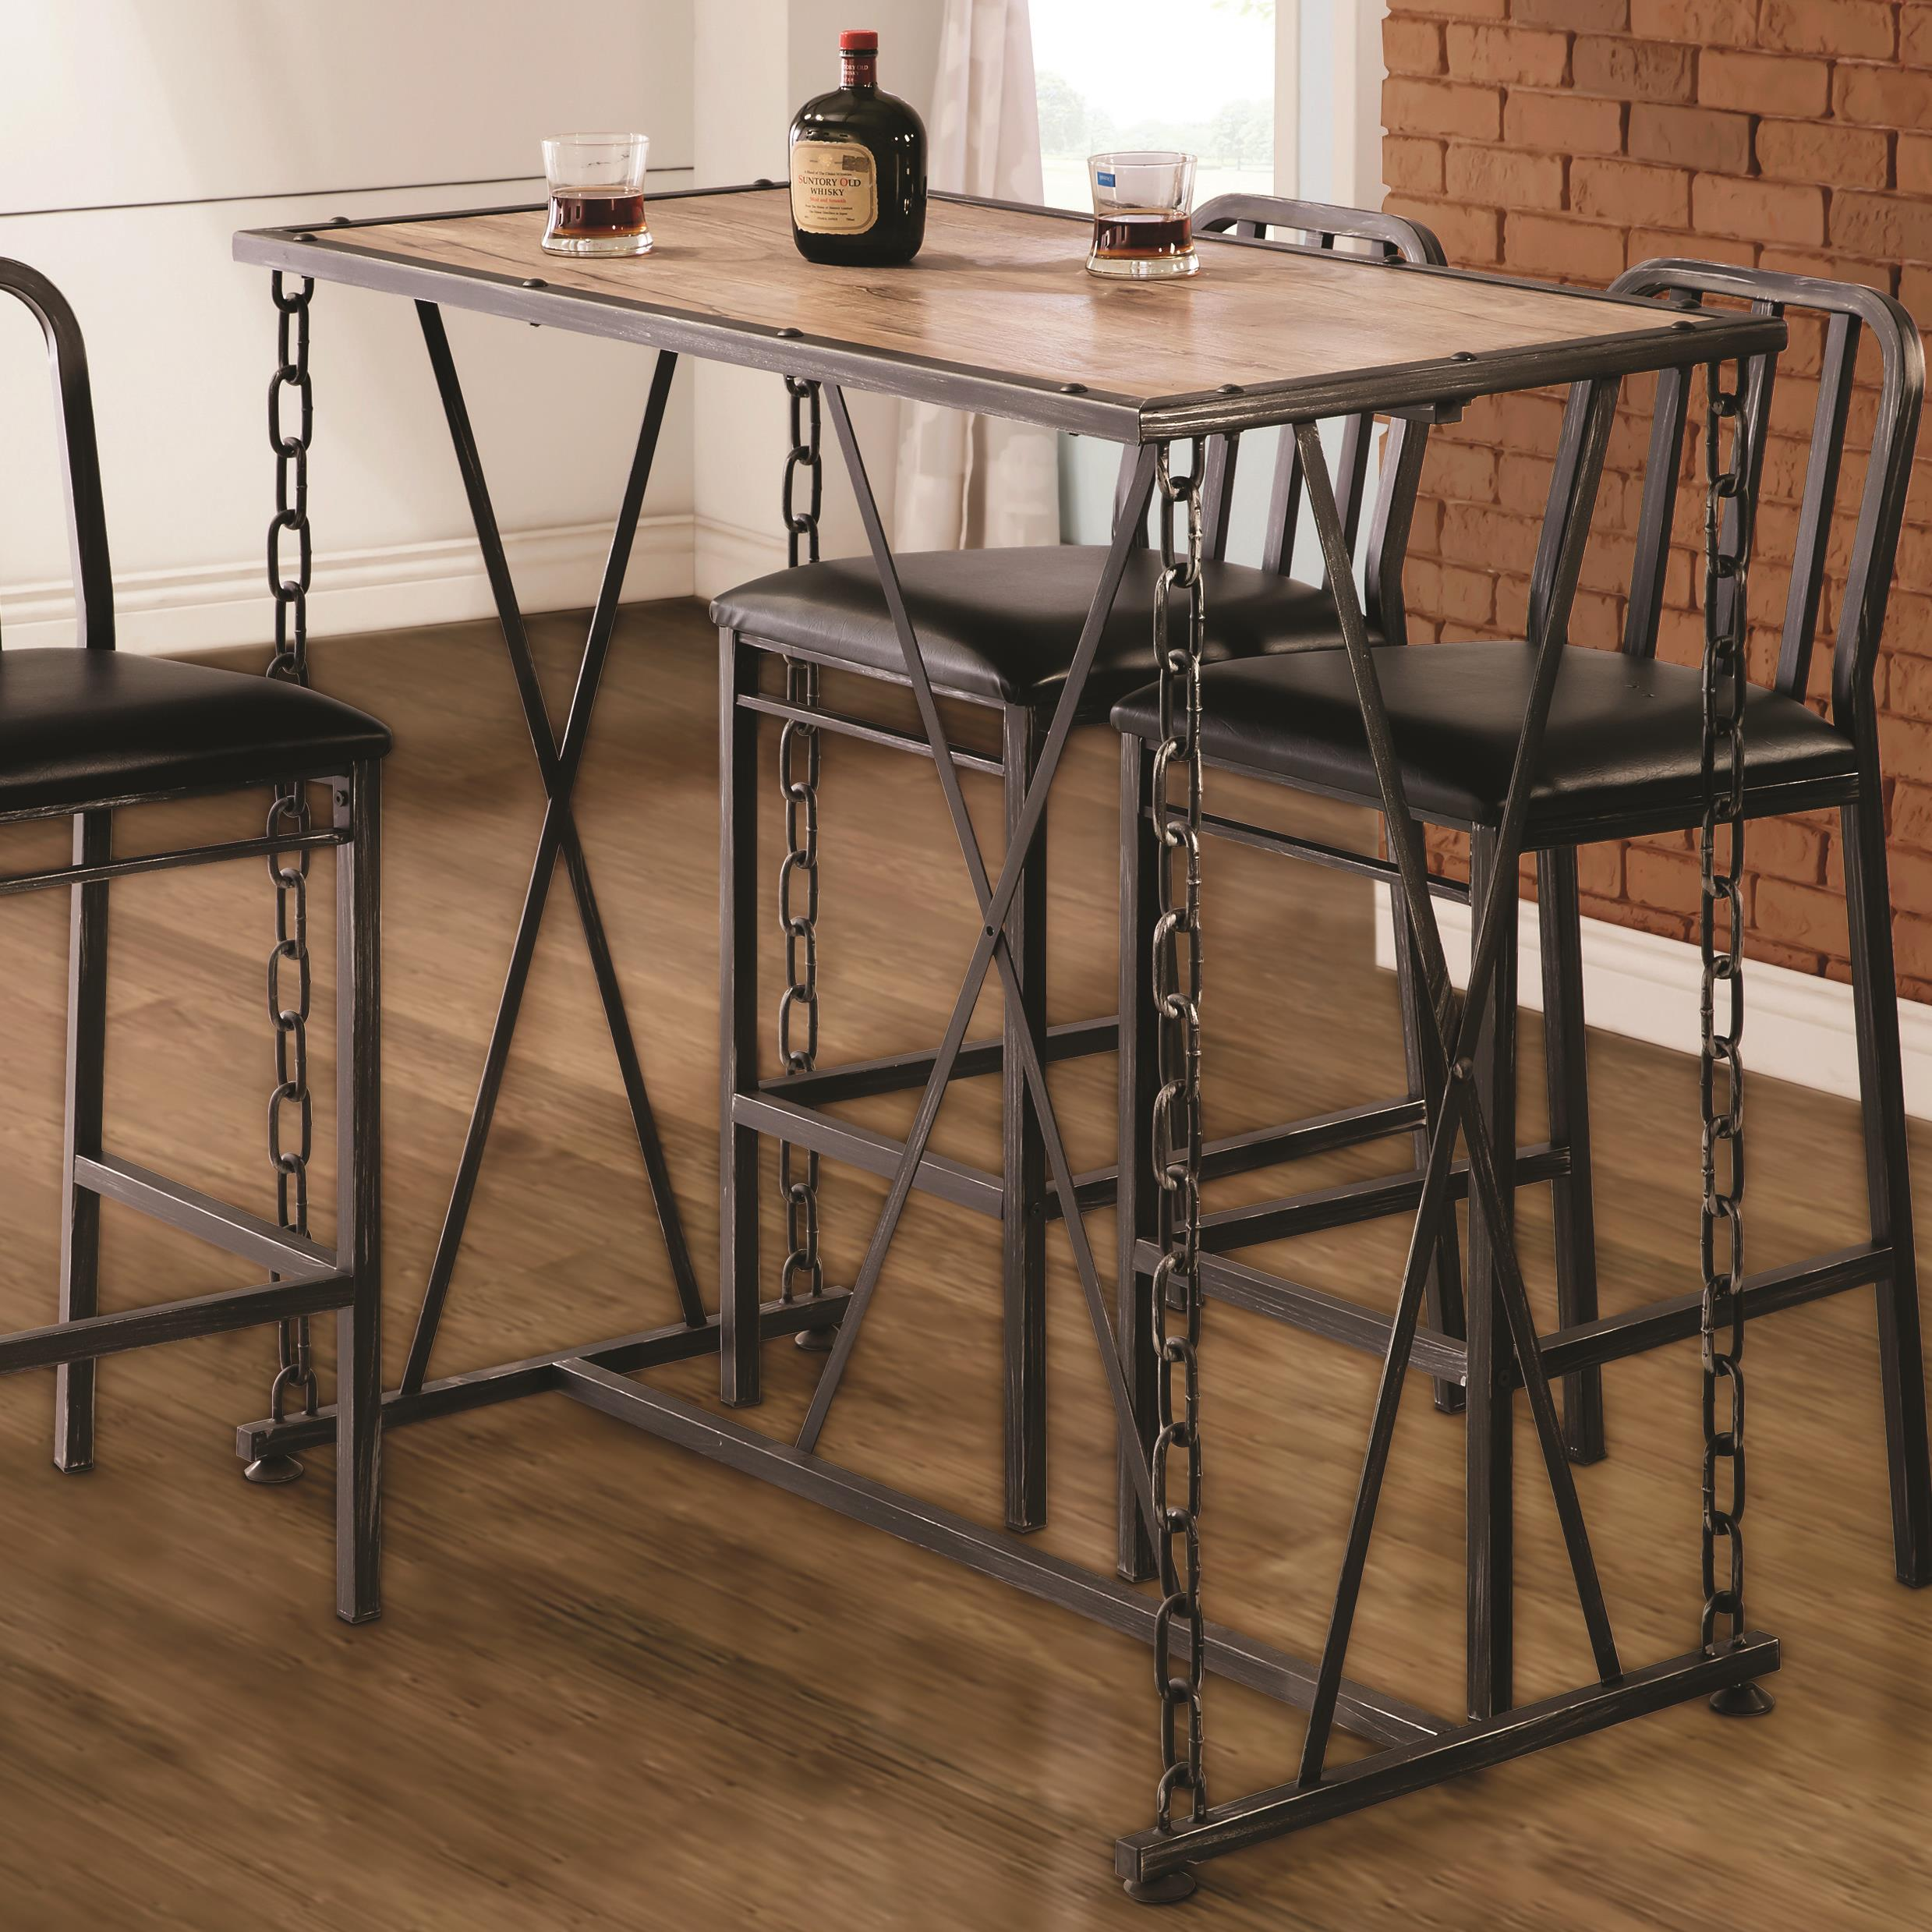 Rustic Industrial Chain Link Bar Table 10069 Silver